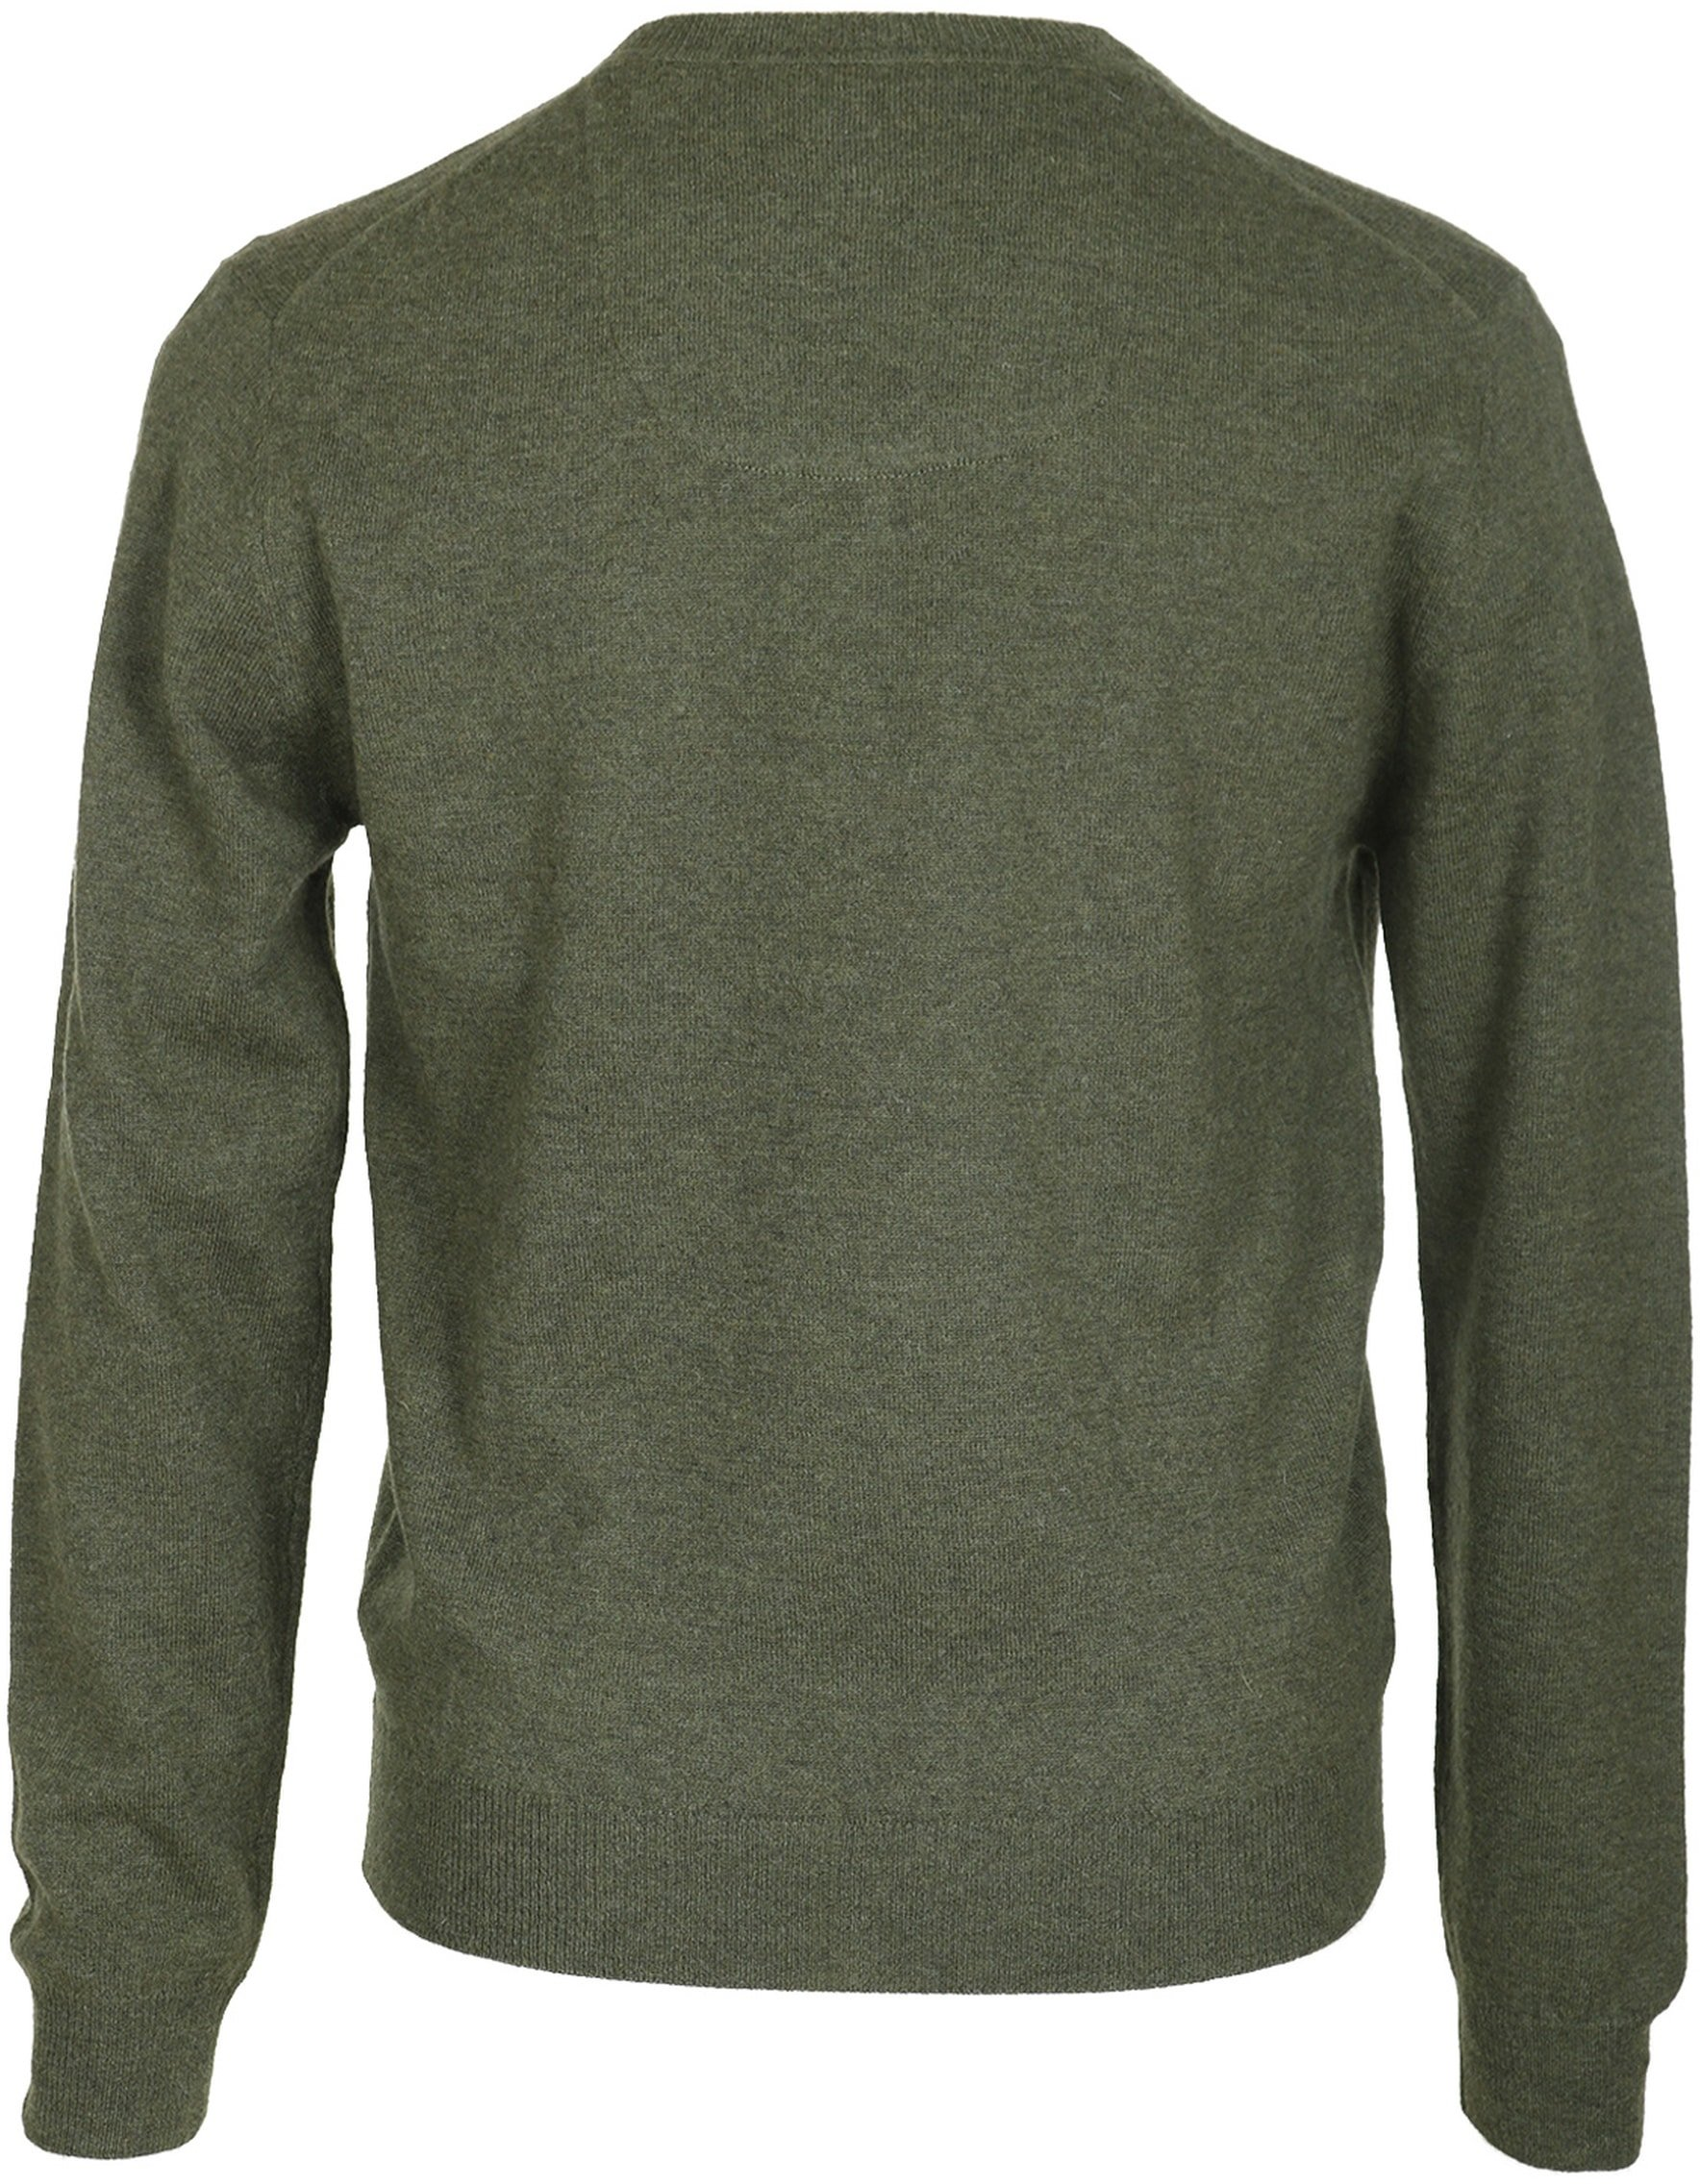 Suitable Pullover Lamswol Legergroen foto 1